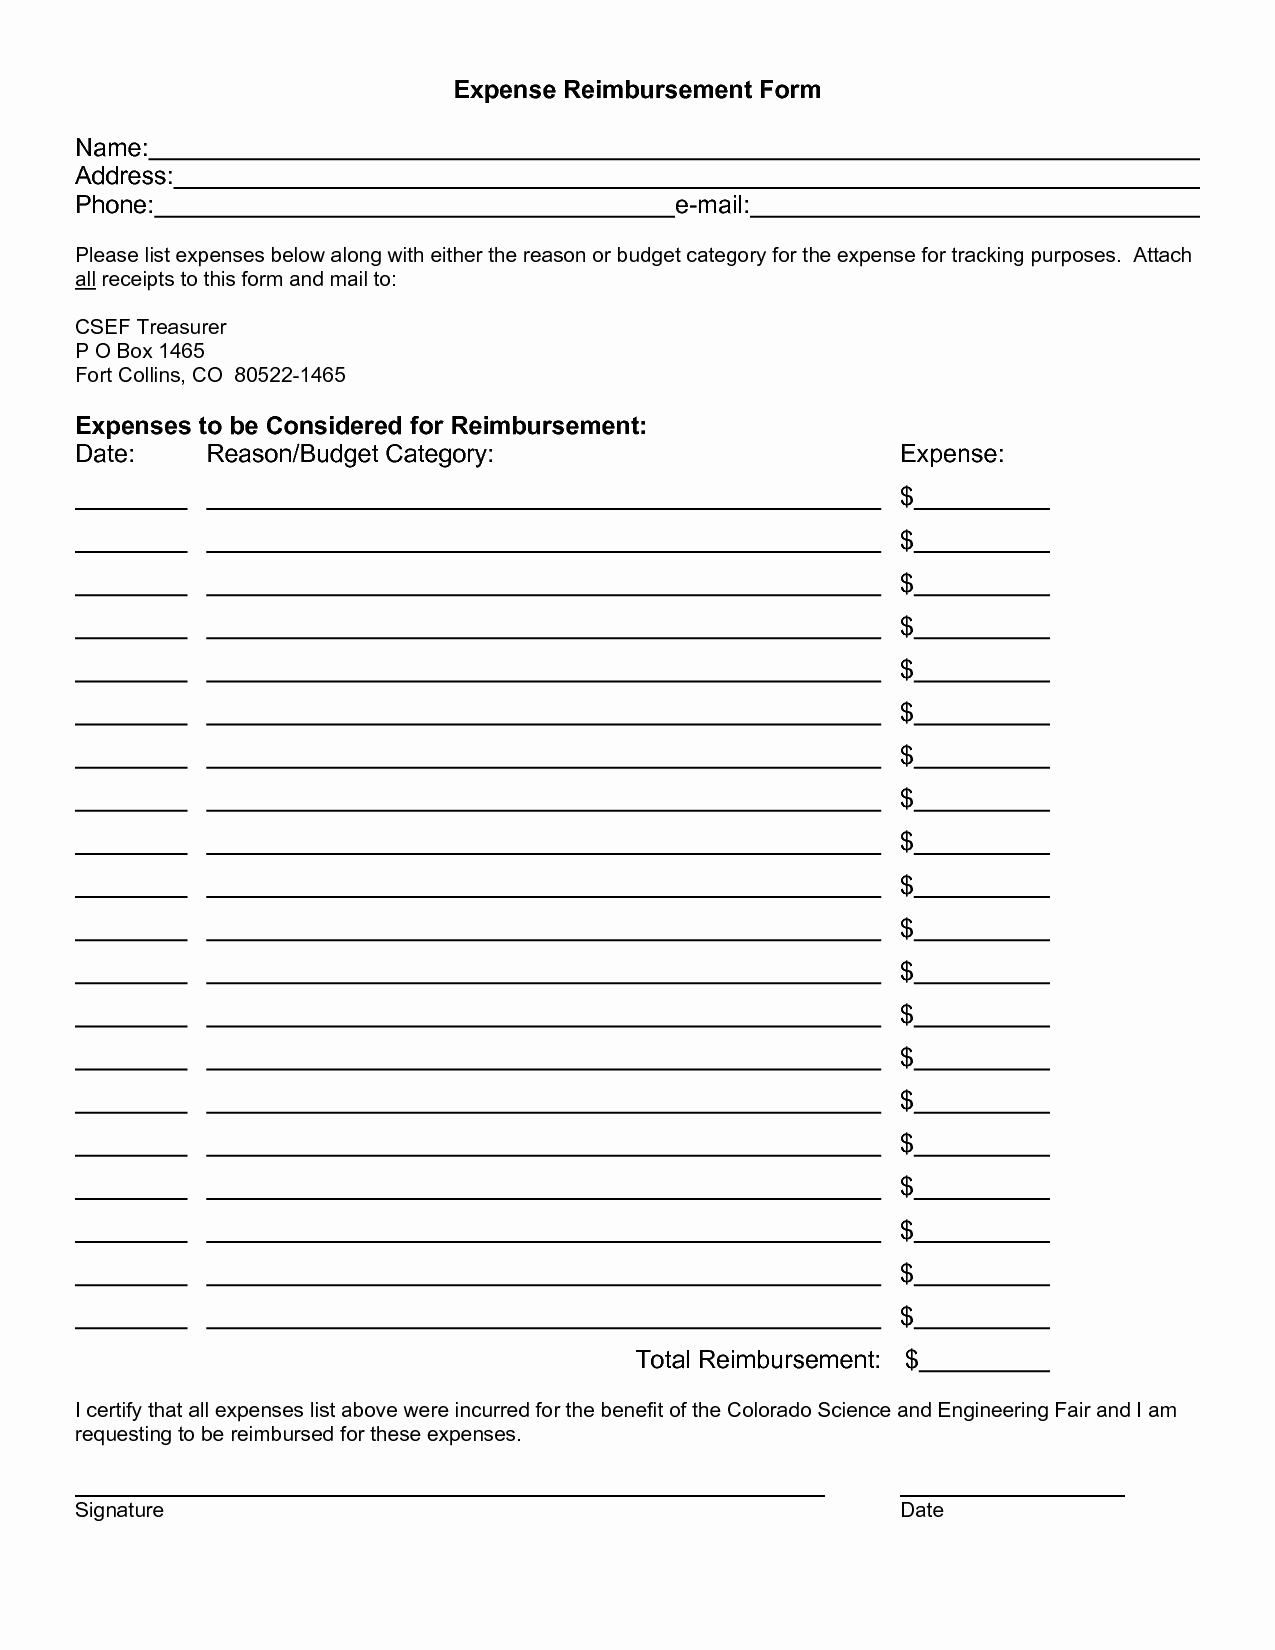 Expense Reimbursement form Template Fresh Expense Reimbursement Template Portablegasgrillweber